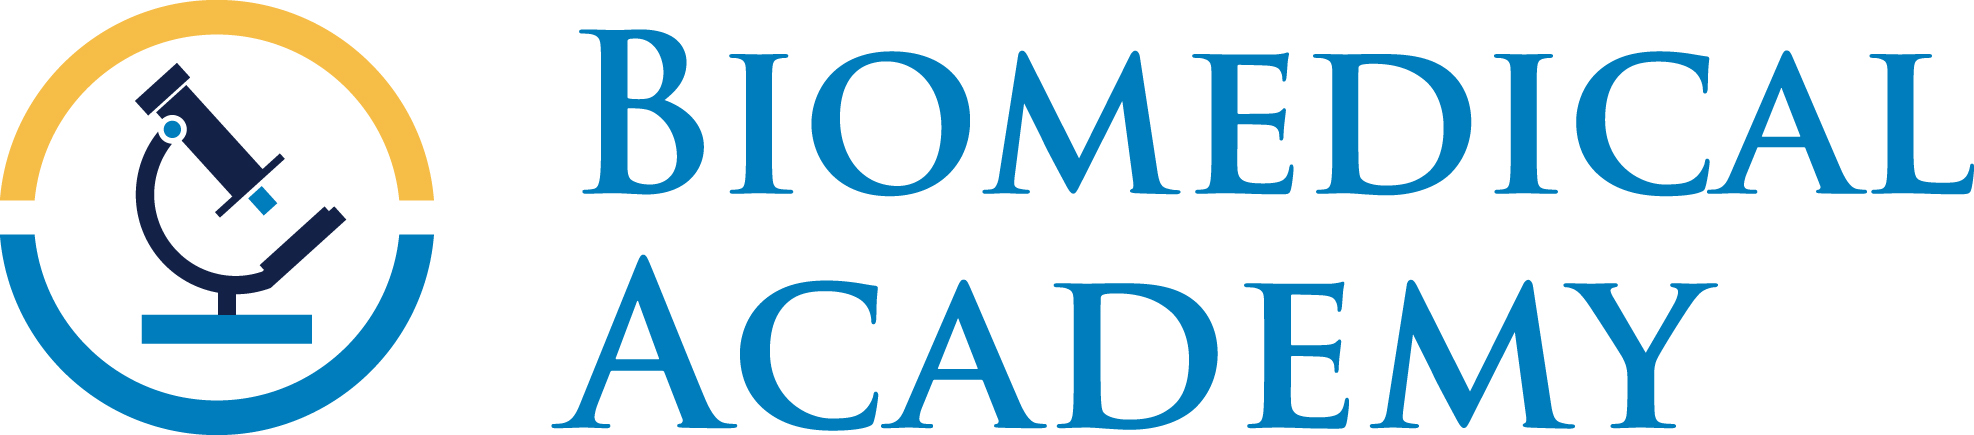 Biomed logo.jpg